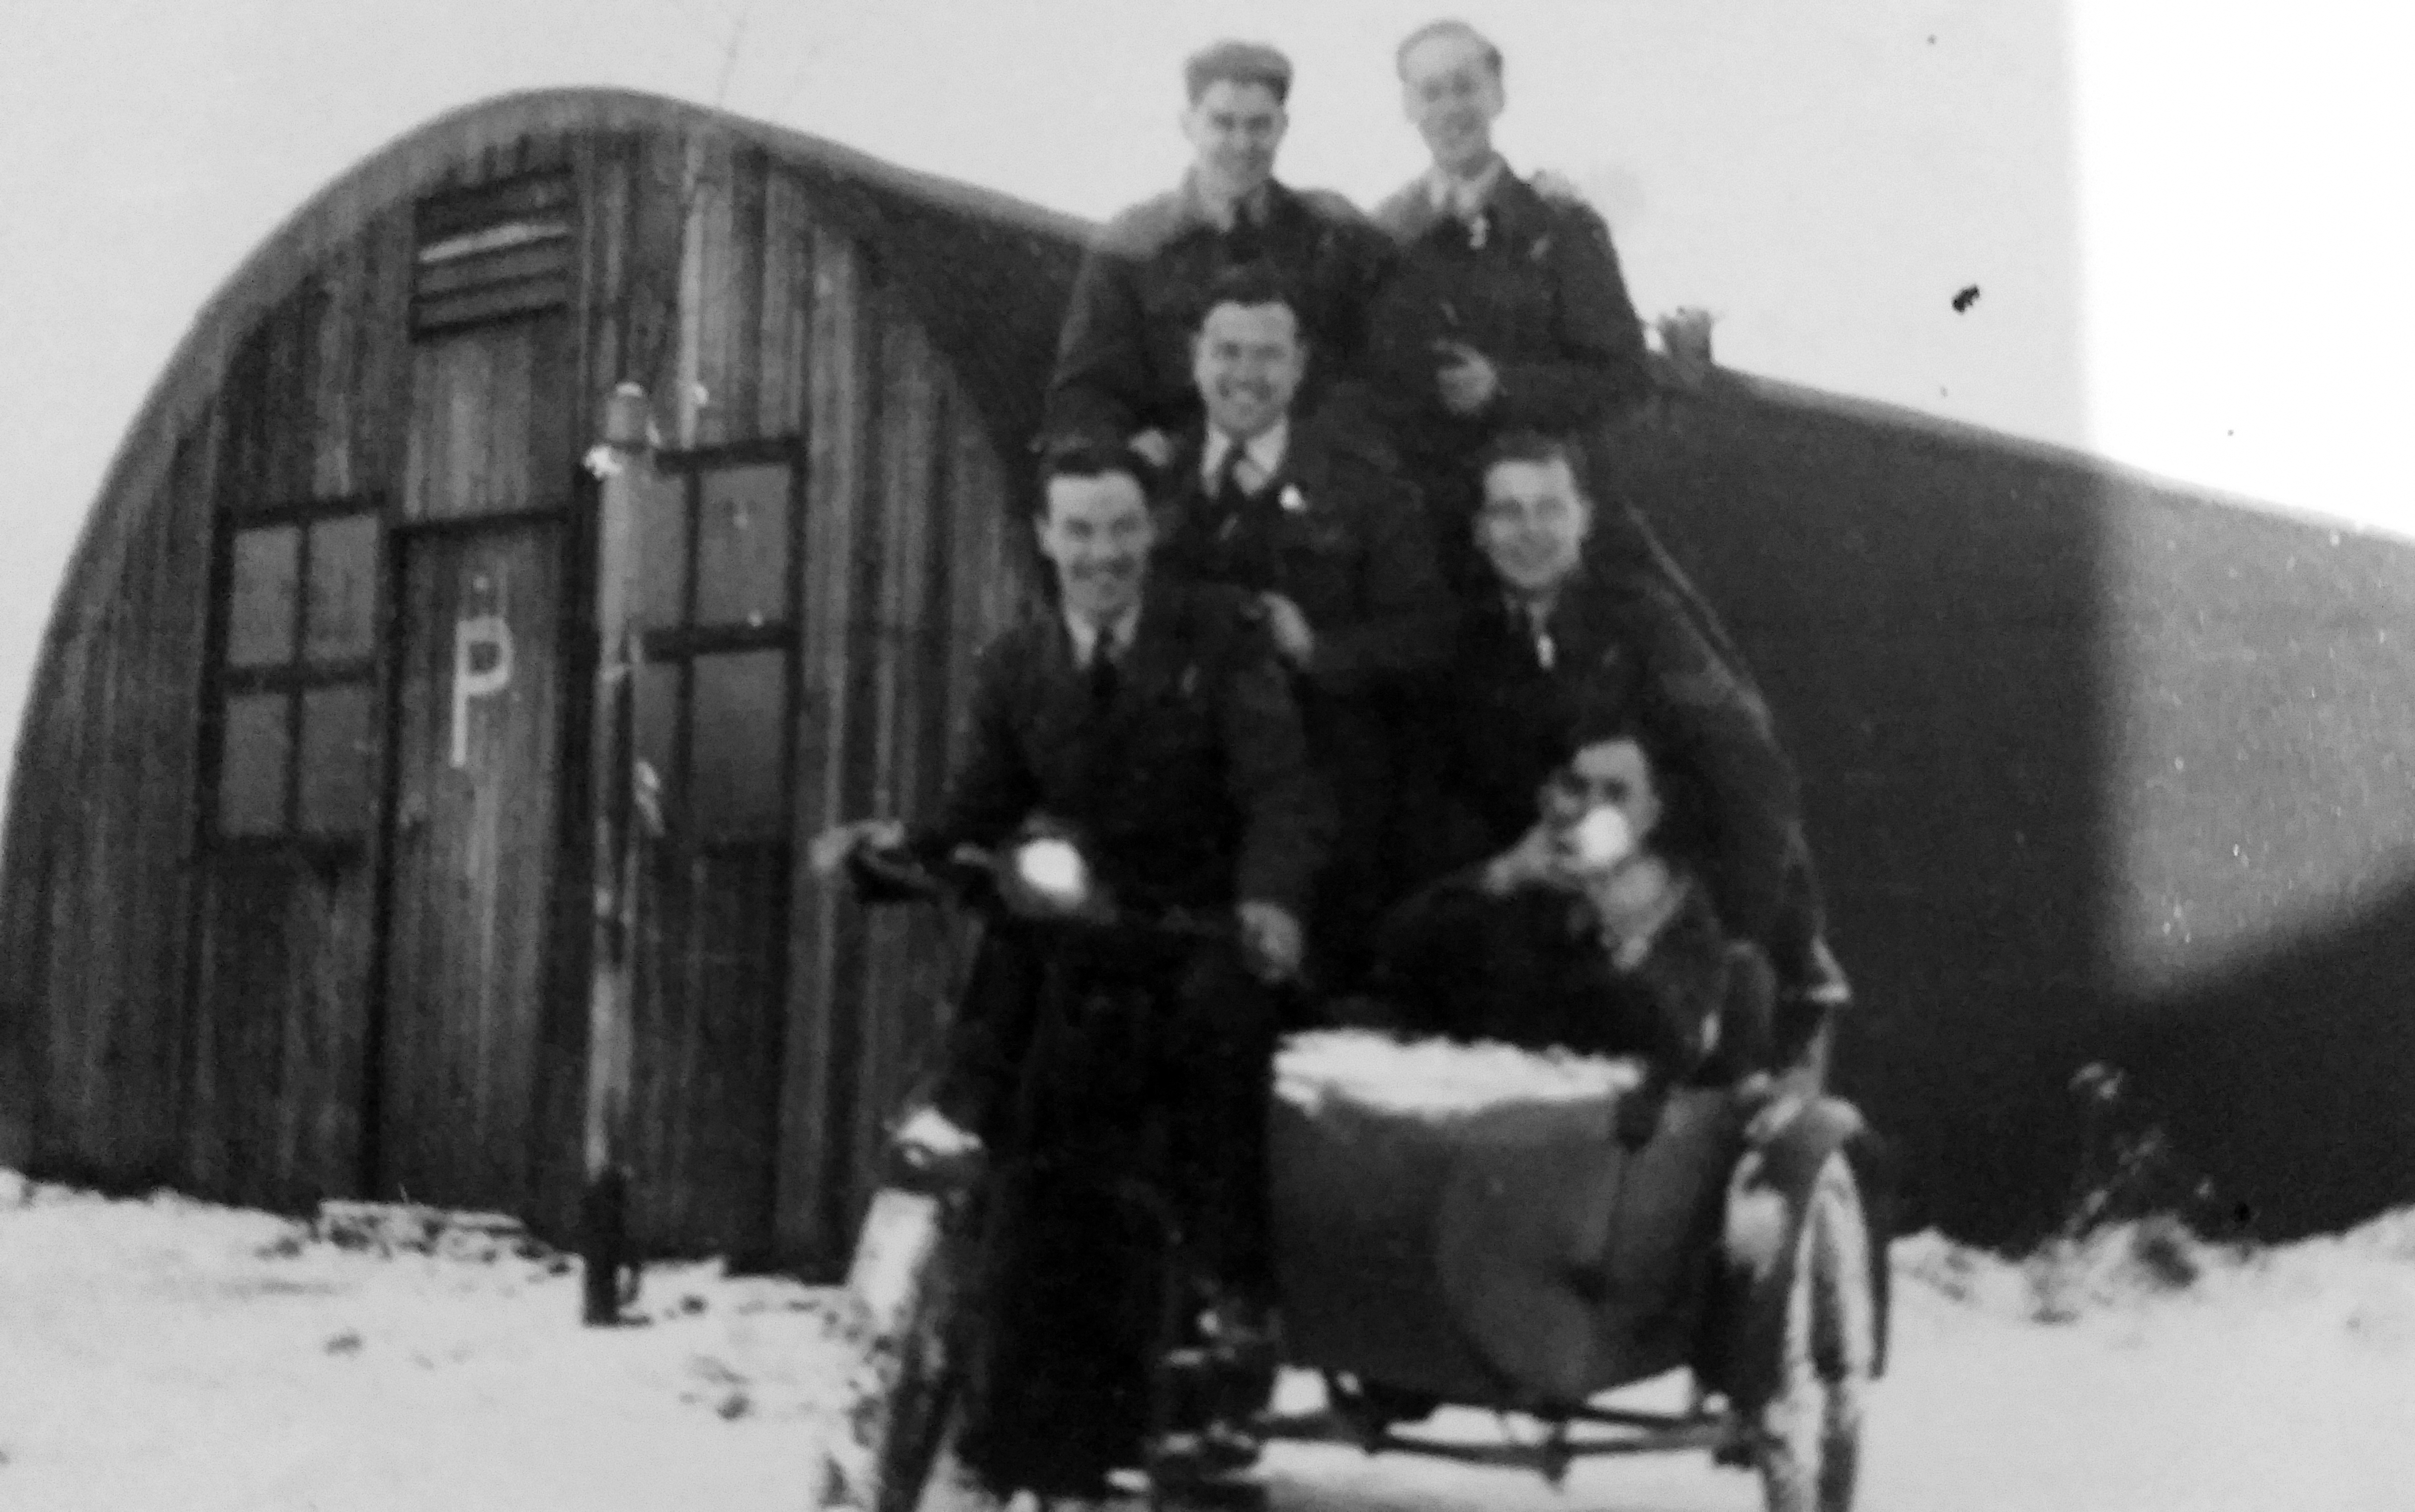 Evenden crew hut Mepal early 1945croped and cont